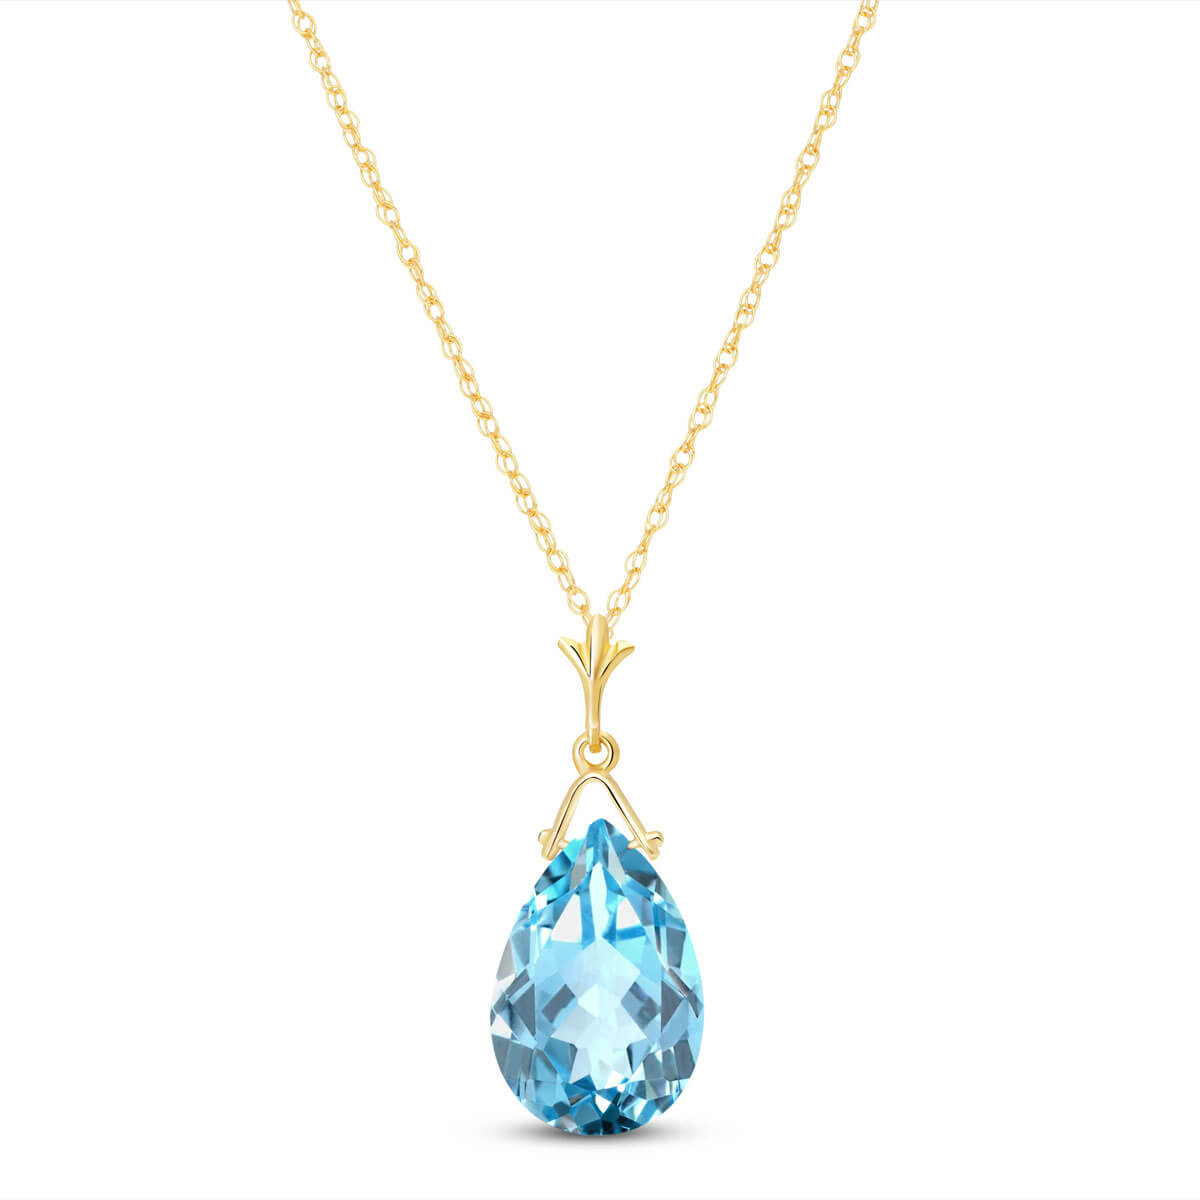 Blue Topaz Droplet Pendant Necklace 5.1 ct in 9ct Gold